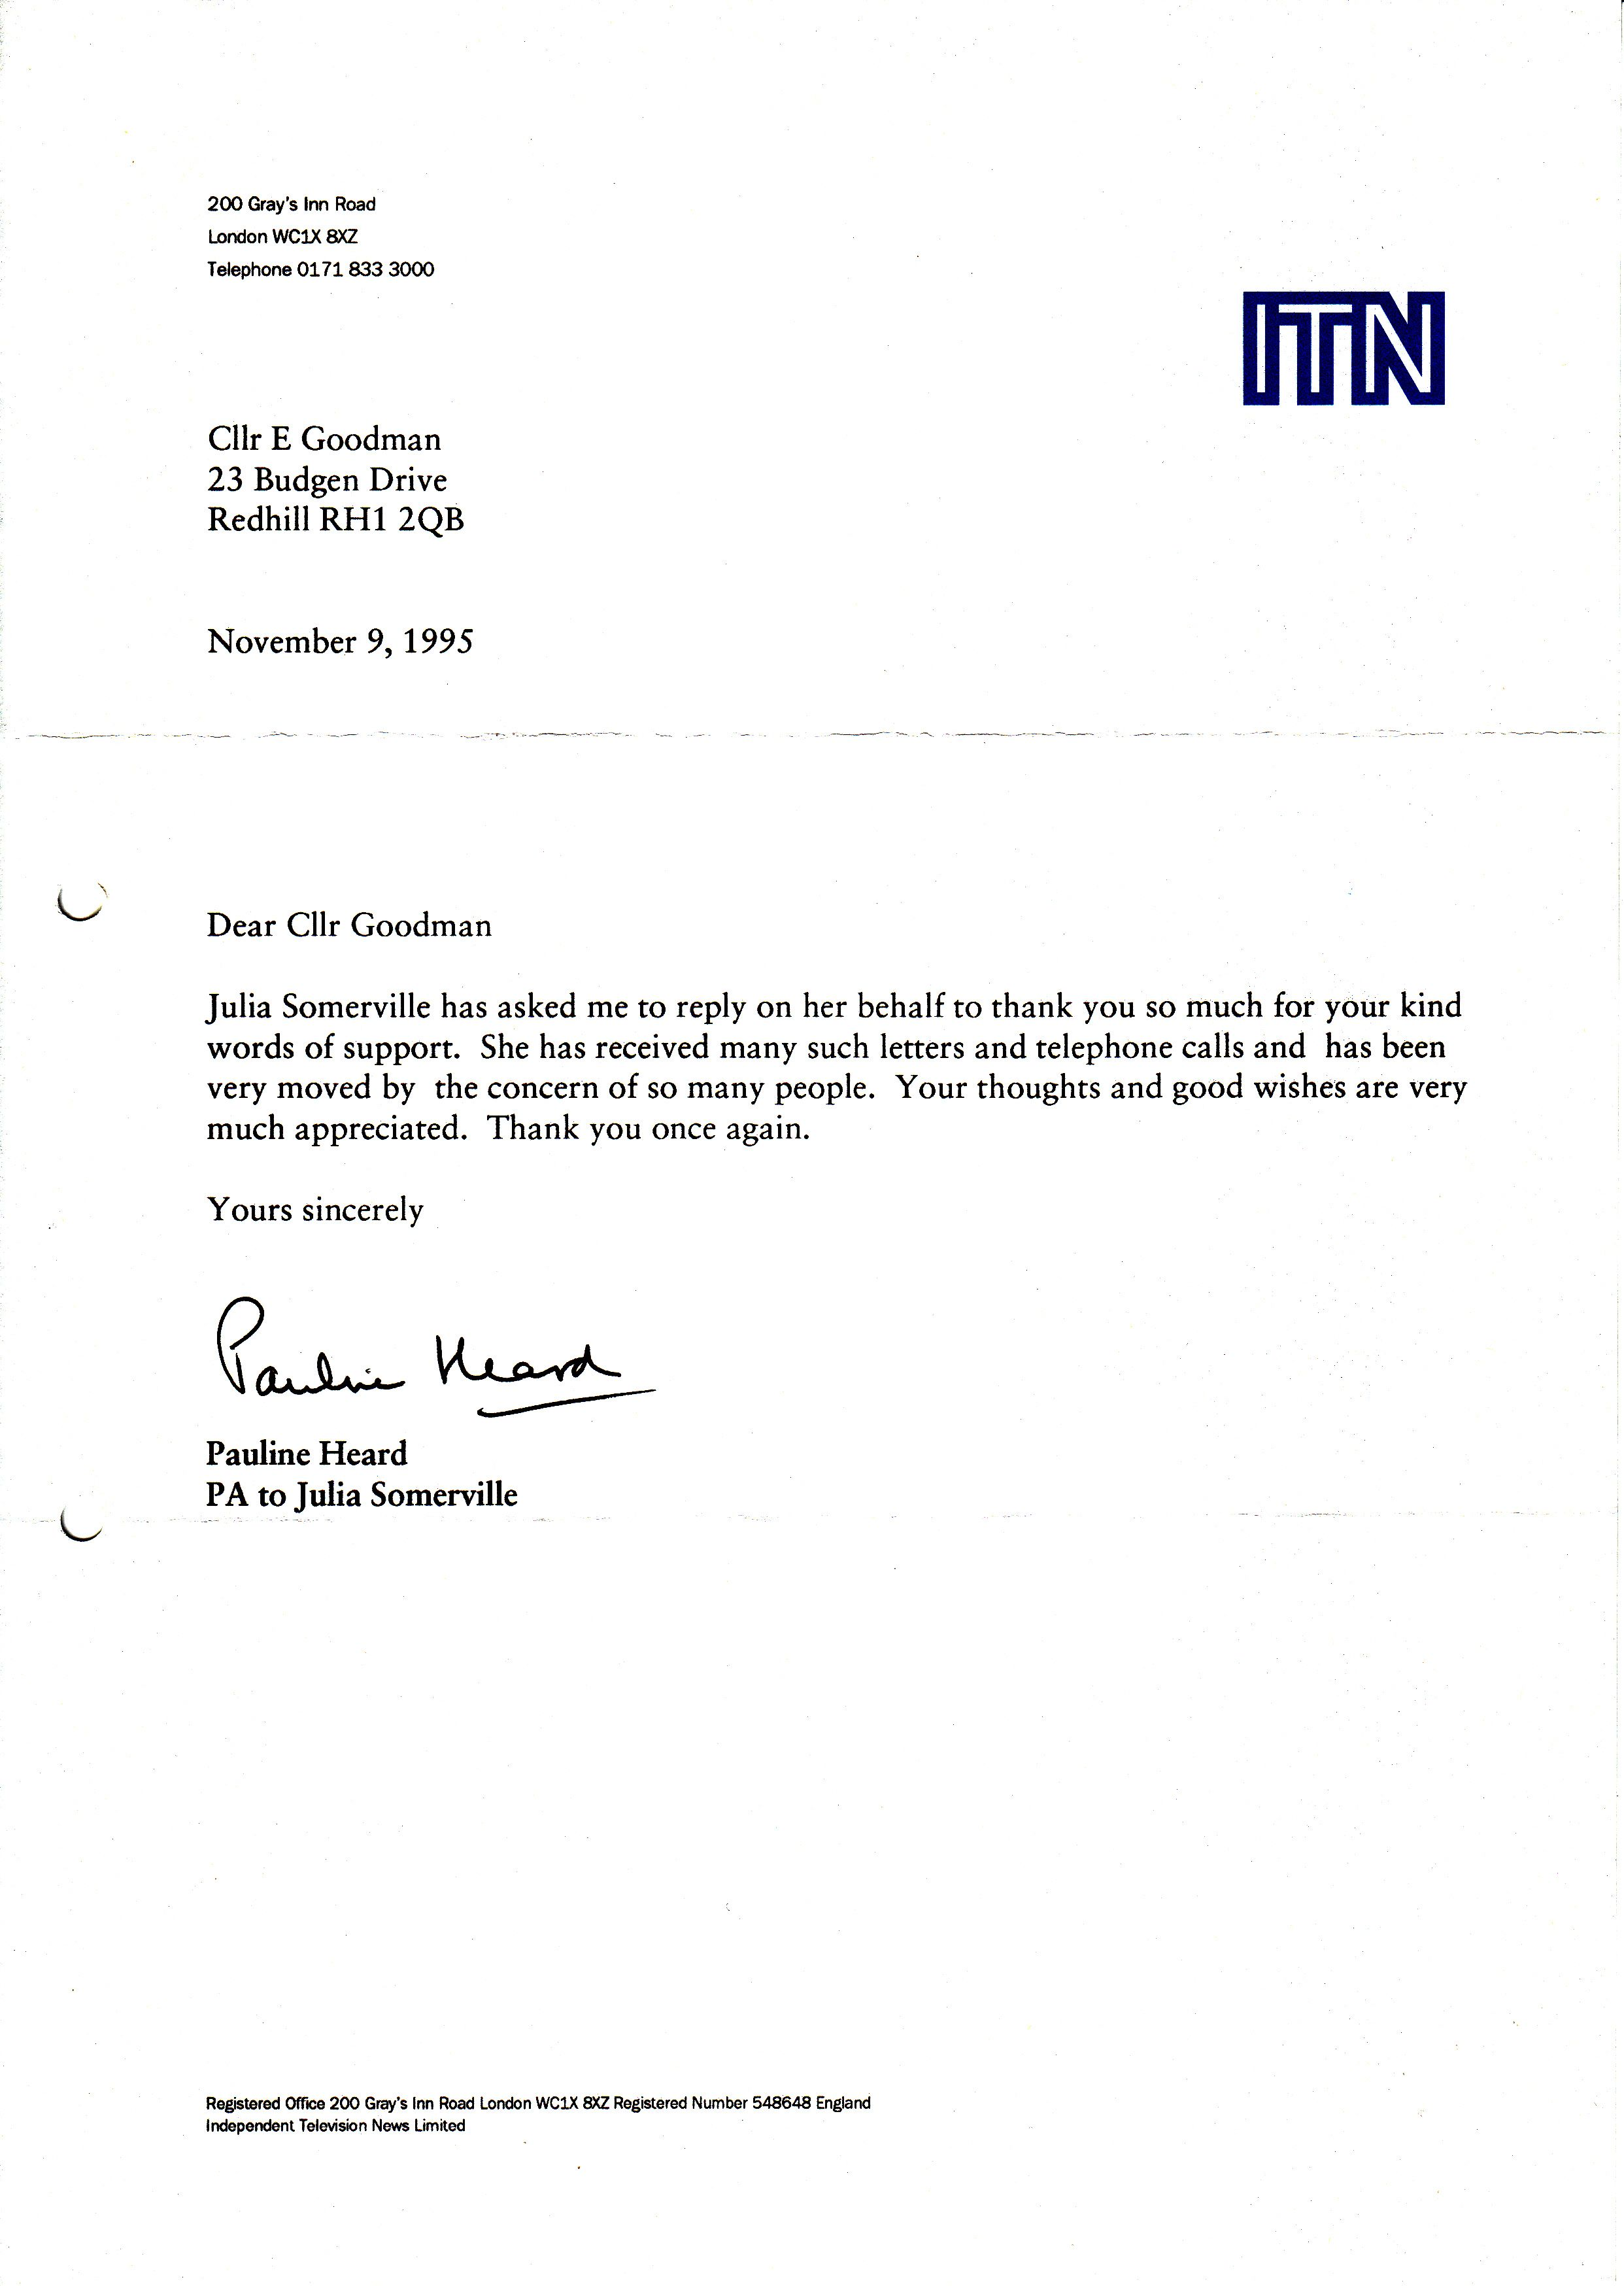 example of resigning letter